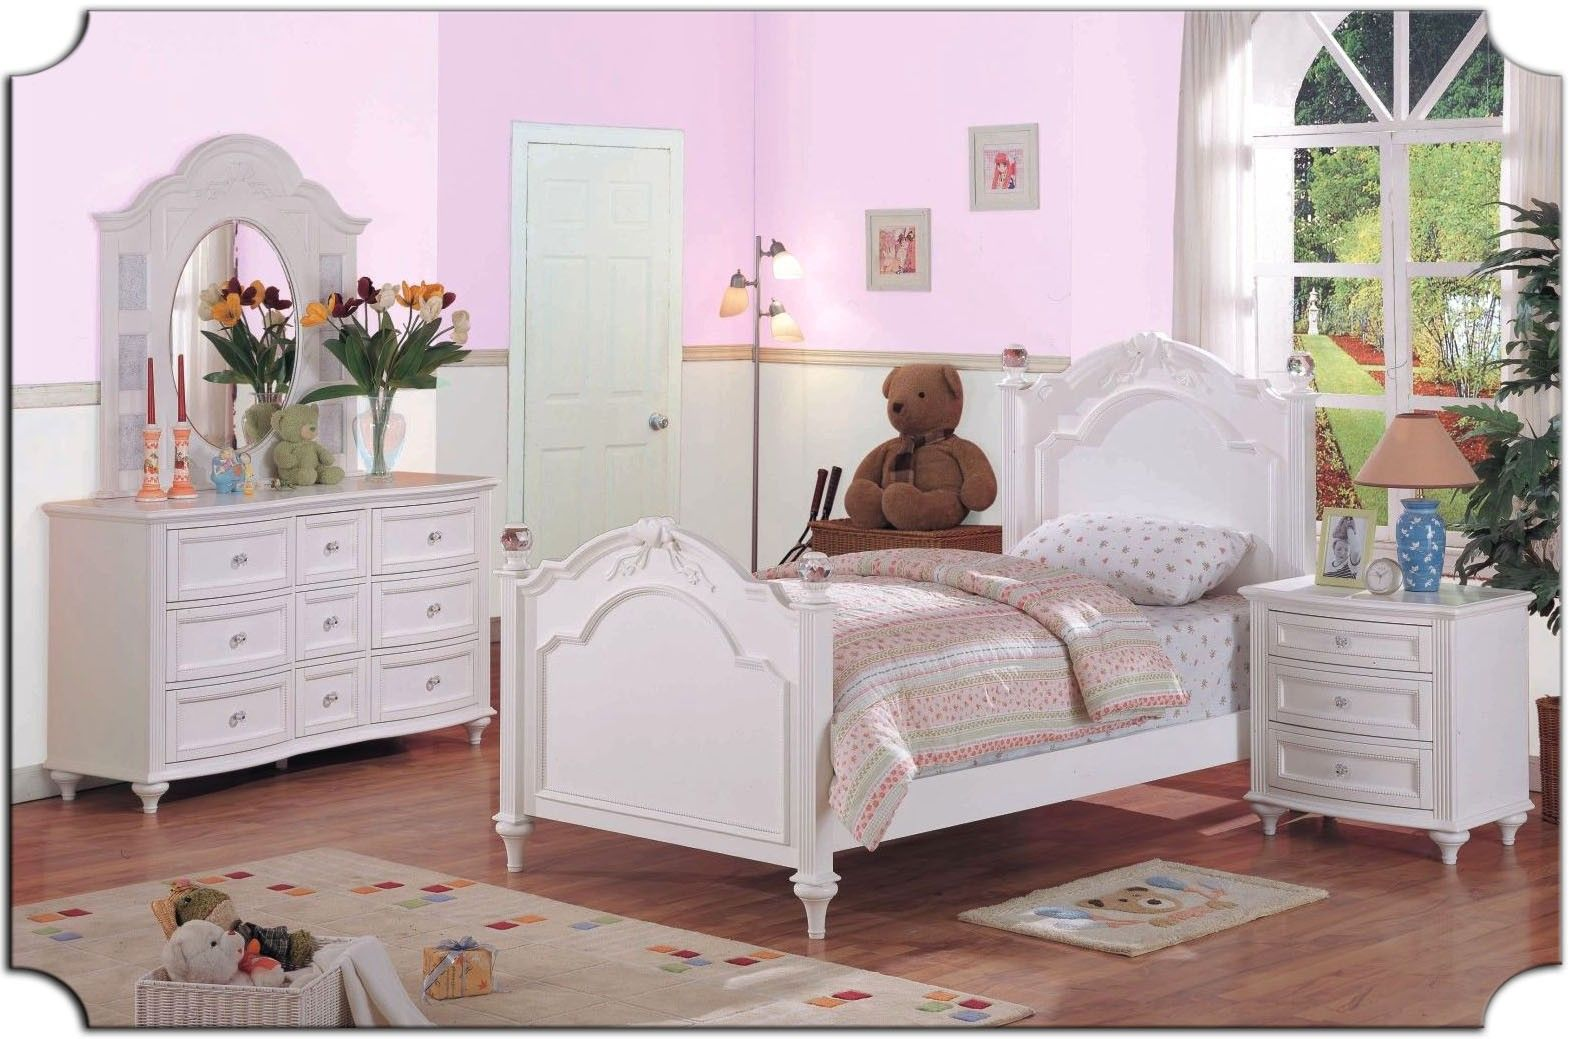 Ambfurniture & Design  Childrens Furniture  Kids Bed Sets Best Kids Bedroom Set Inspiration